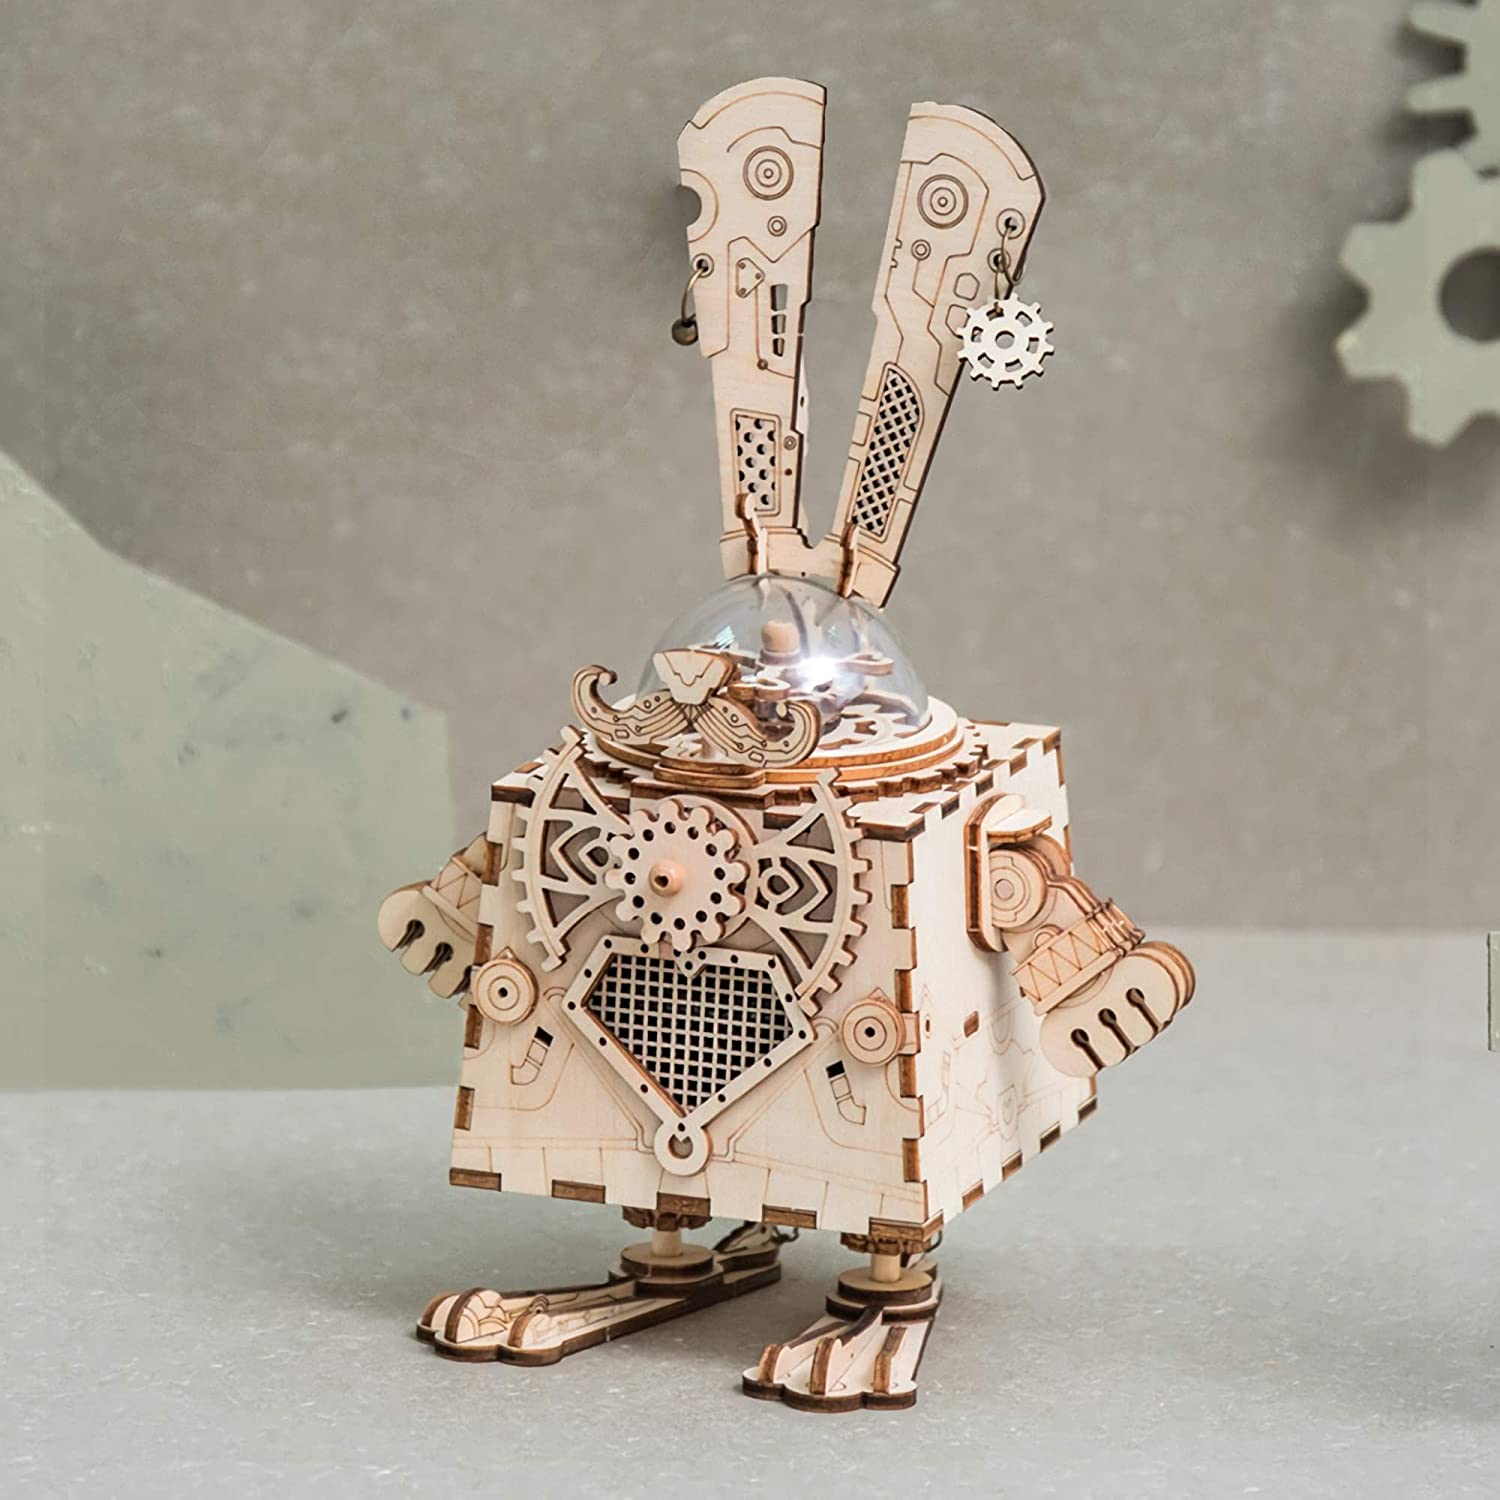 Creative Birthday Adults Model Kits DIY Punk Construction Model Kits Rabbit Toys for 8 Year Old and Up ROBOTIME Bunny Music Box 3D Jigsaw Puzzle to Build Laser Cut Wooden Model Kit